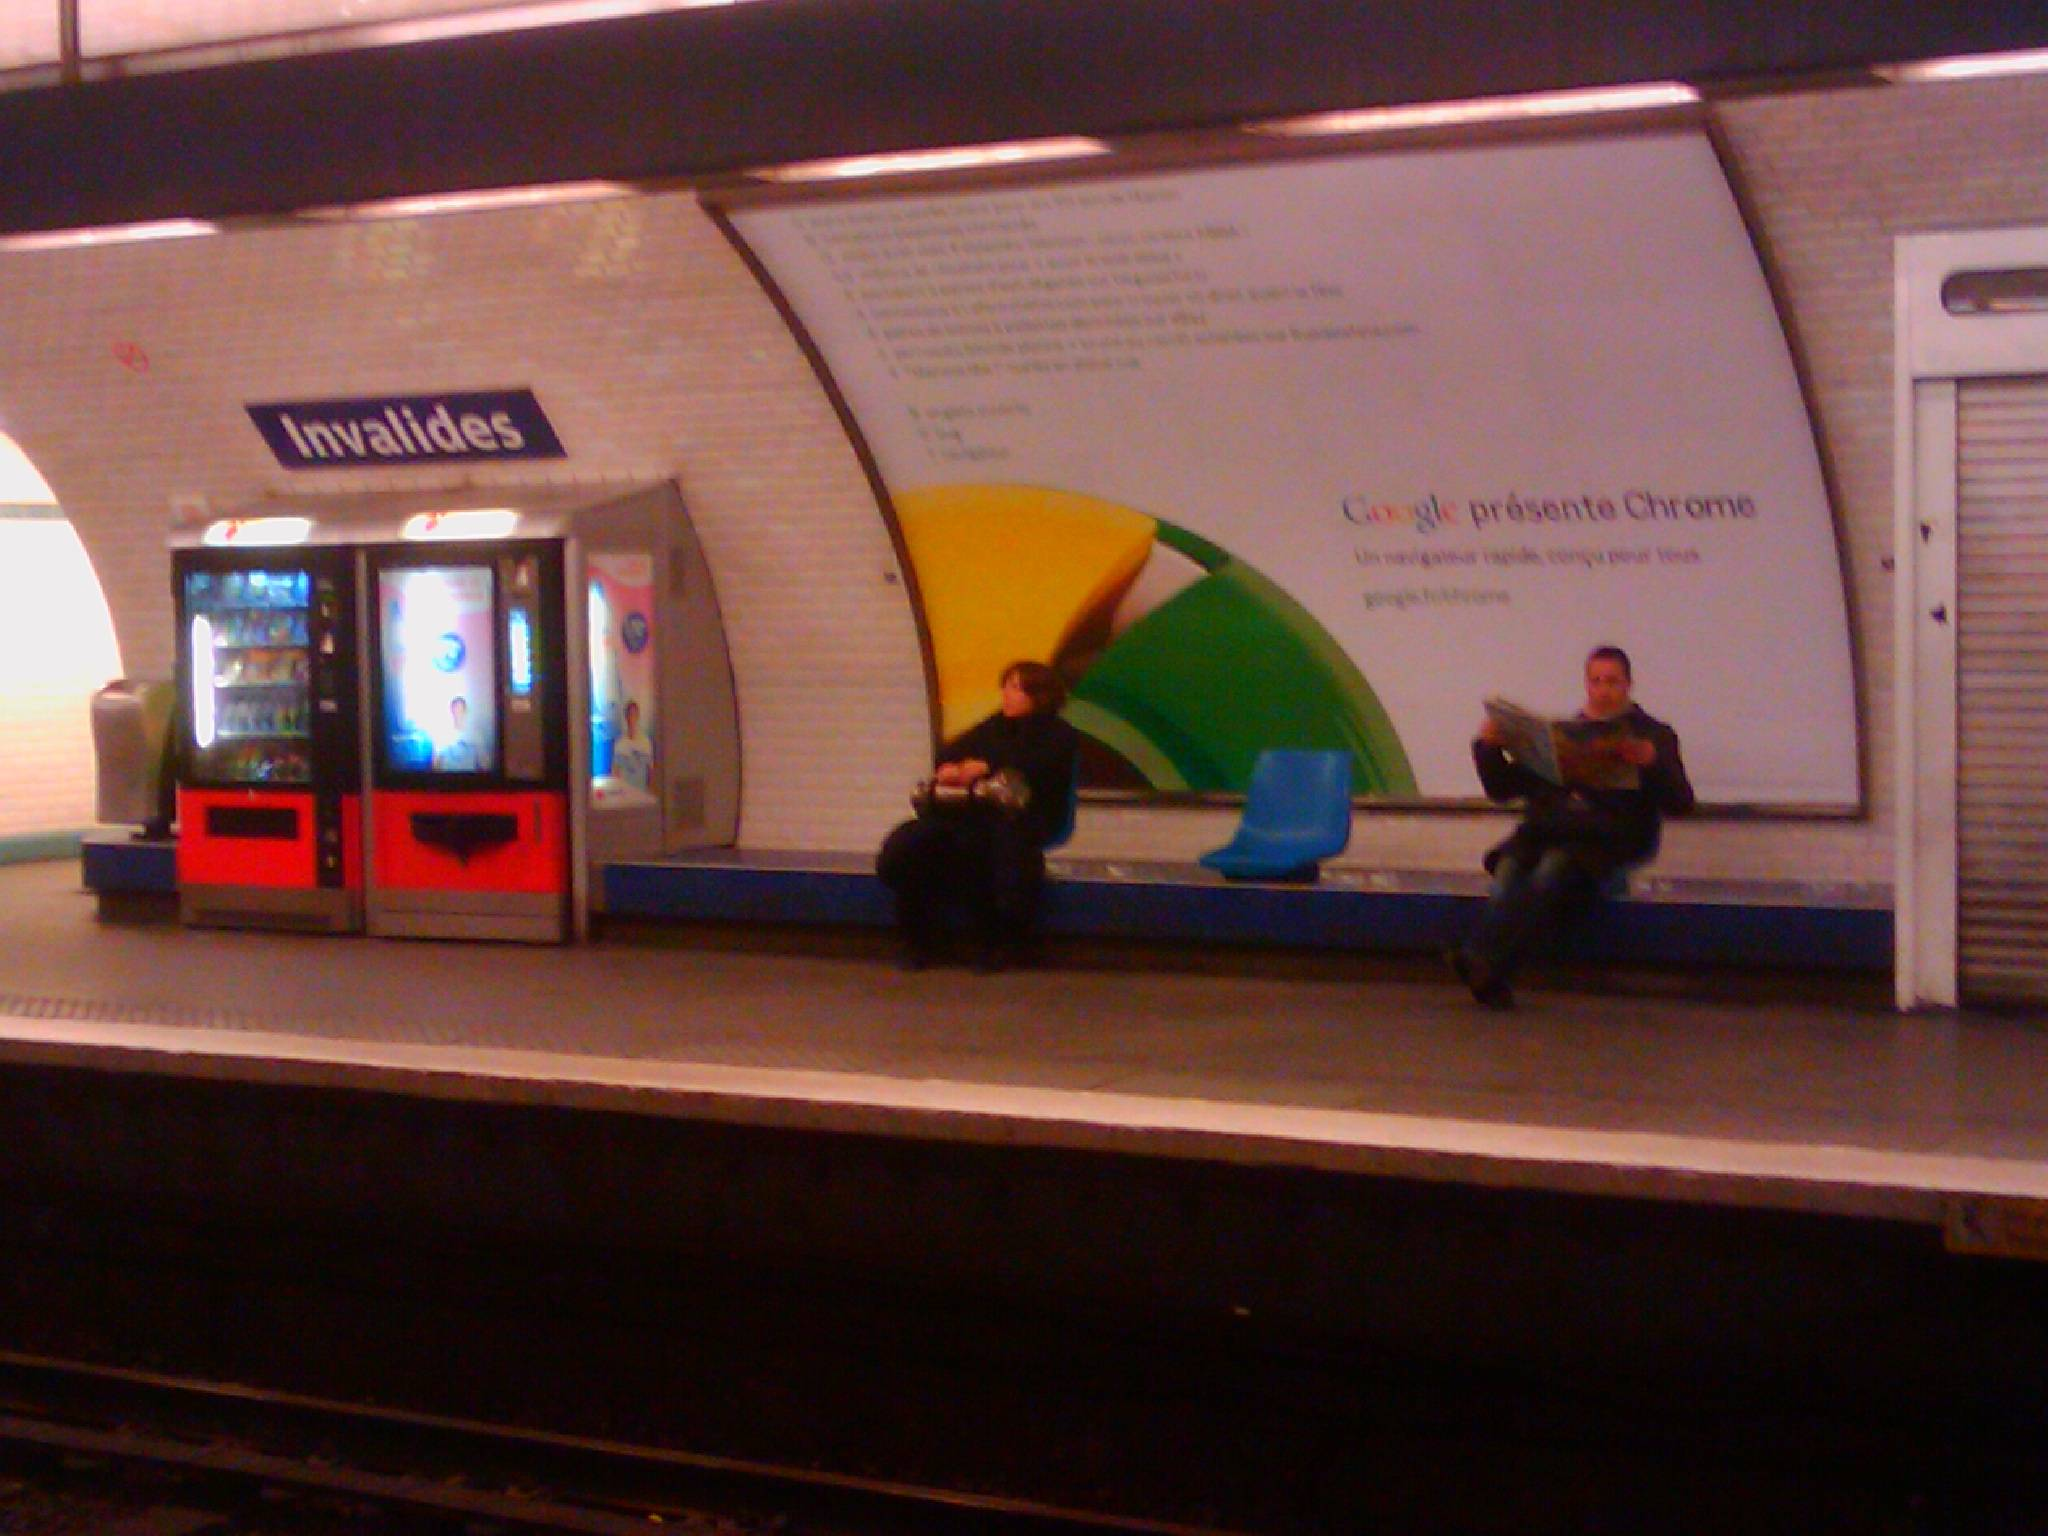 google chrome publicite